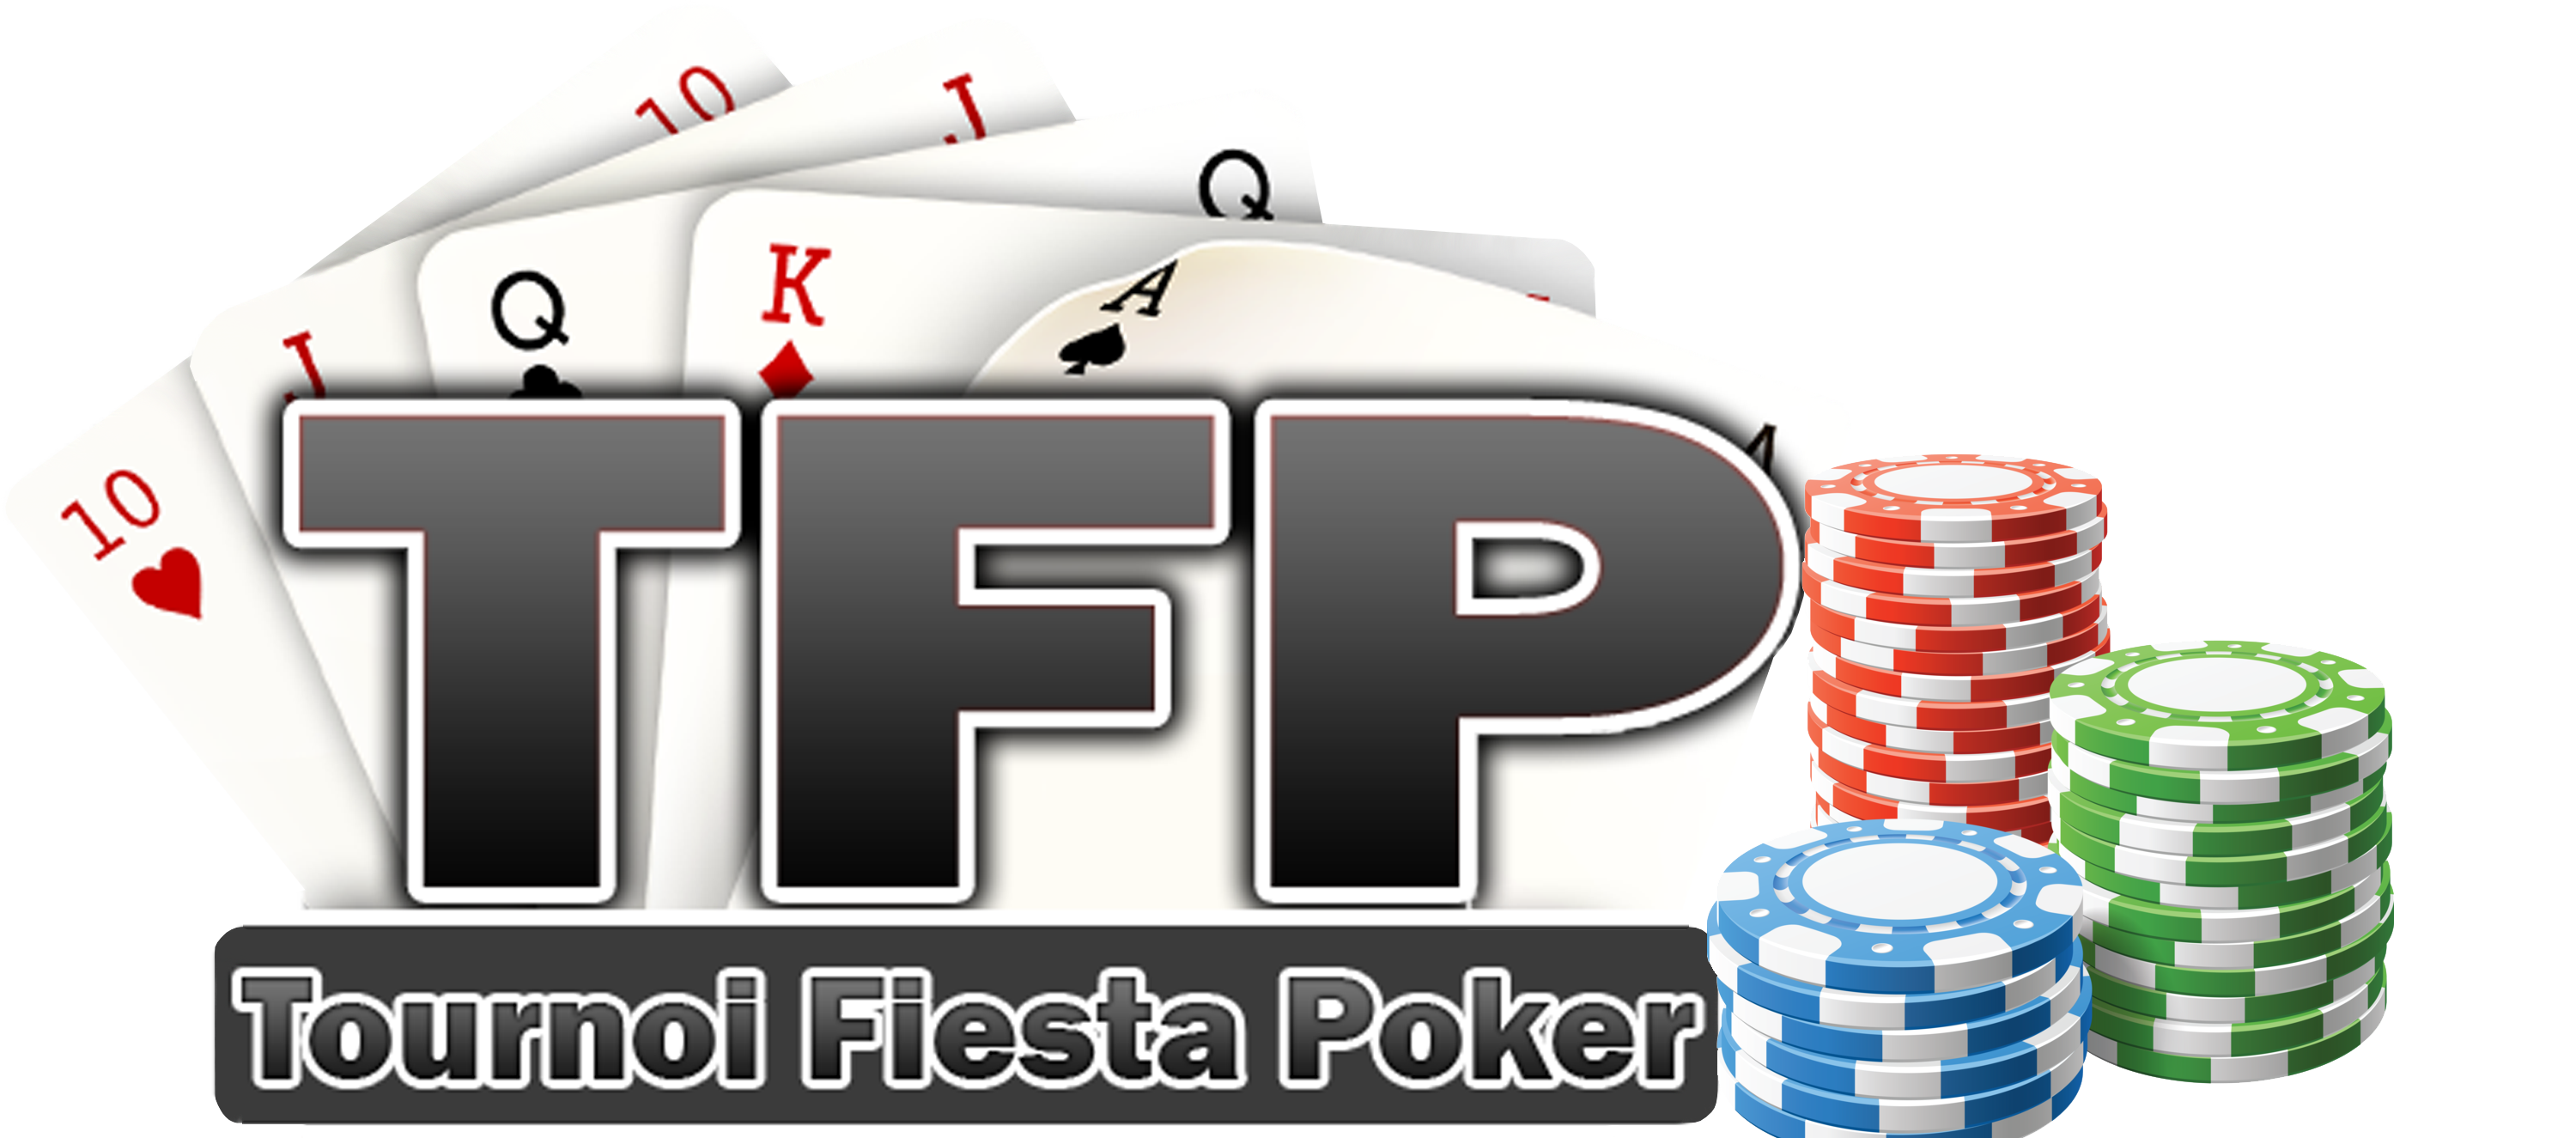 TOURNOI FIESTA POKER